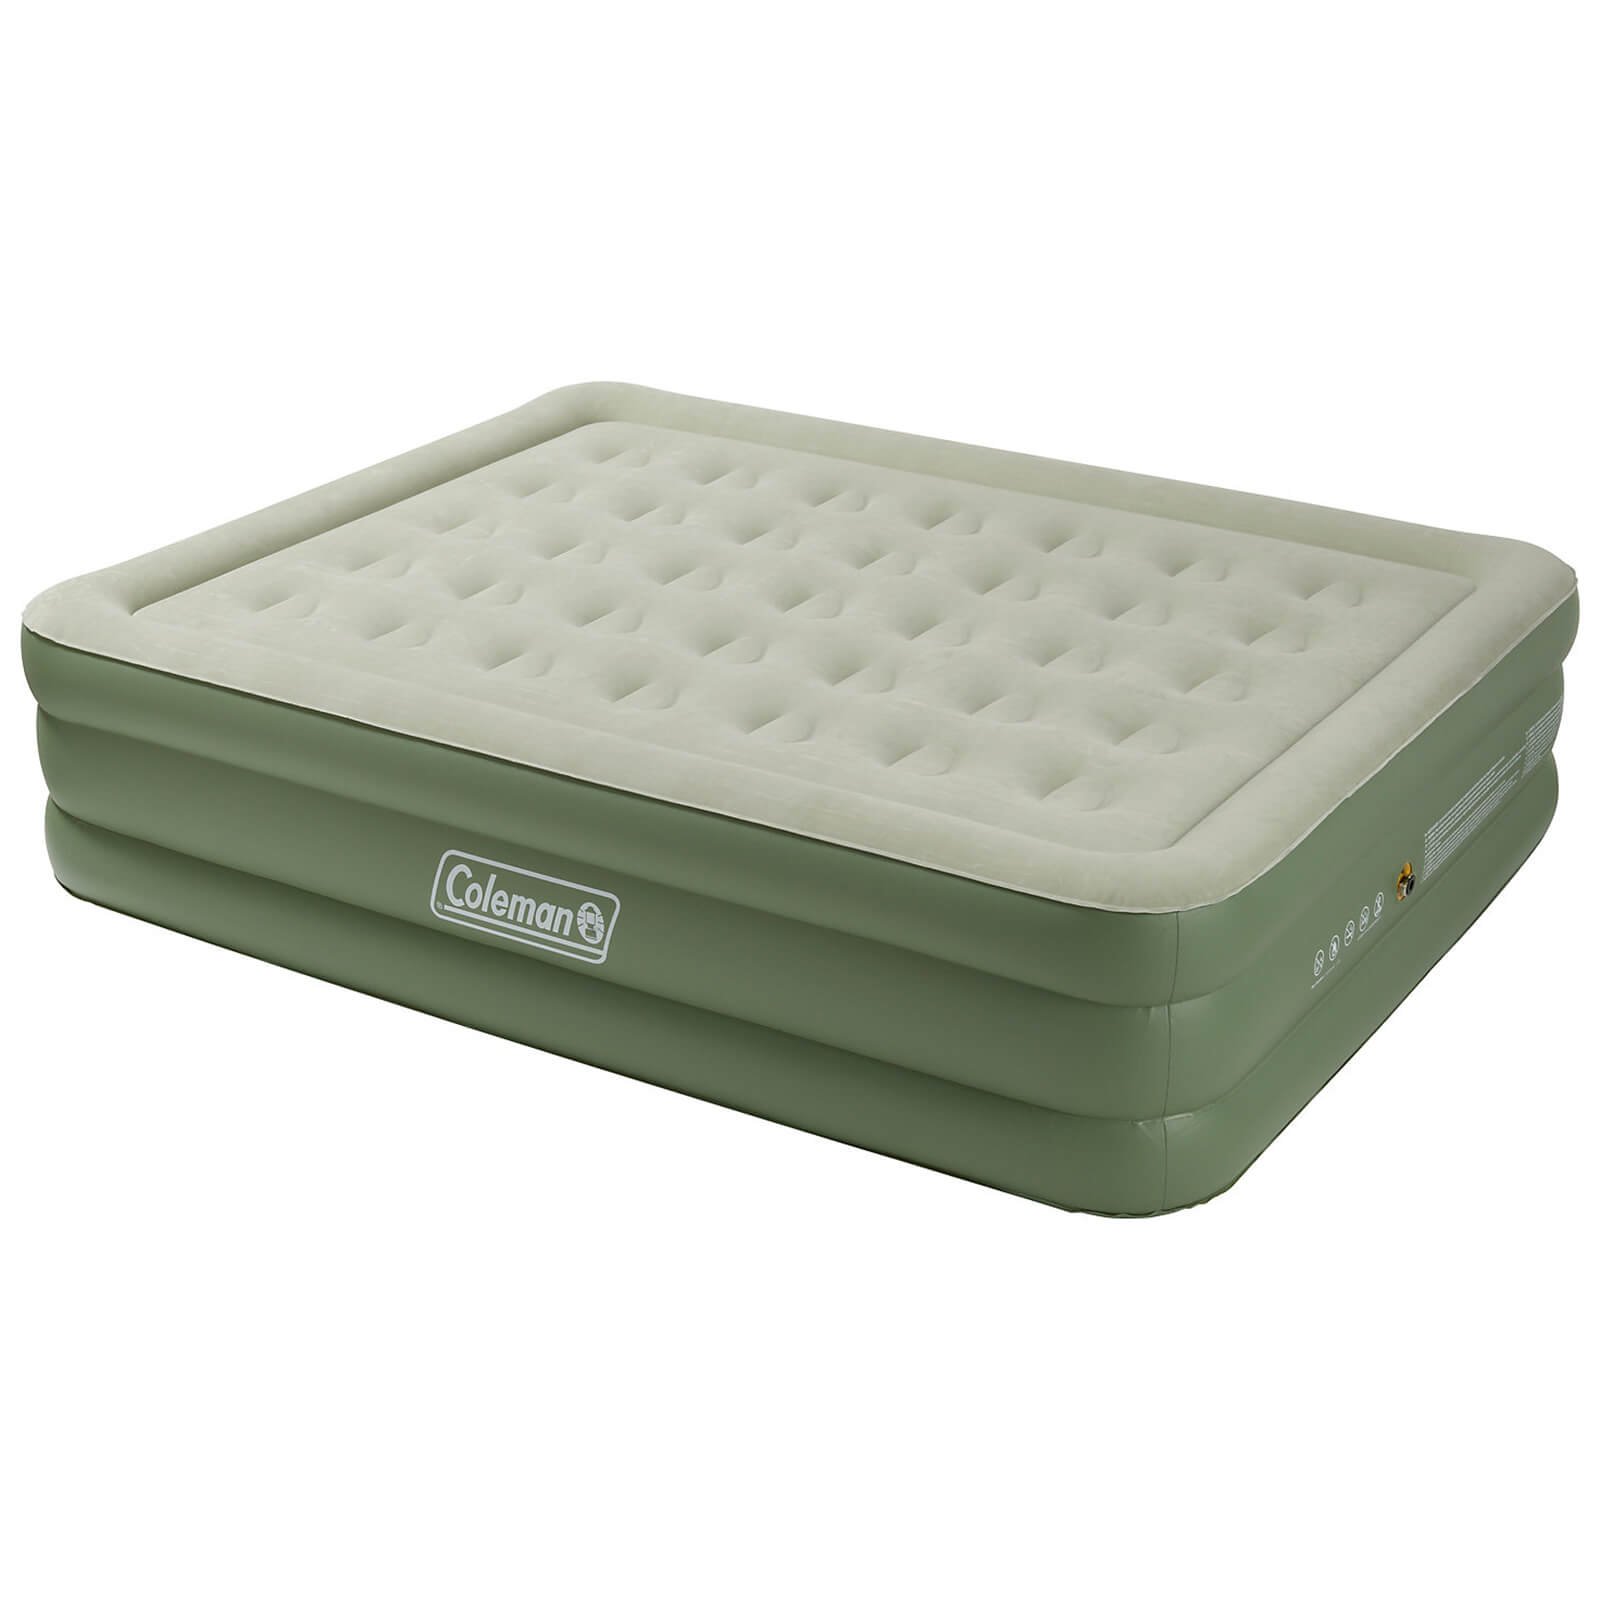 Coleman Raised Airbed - King